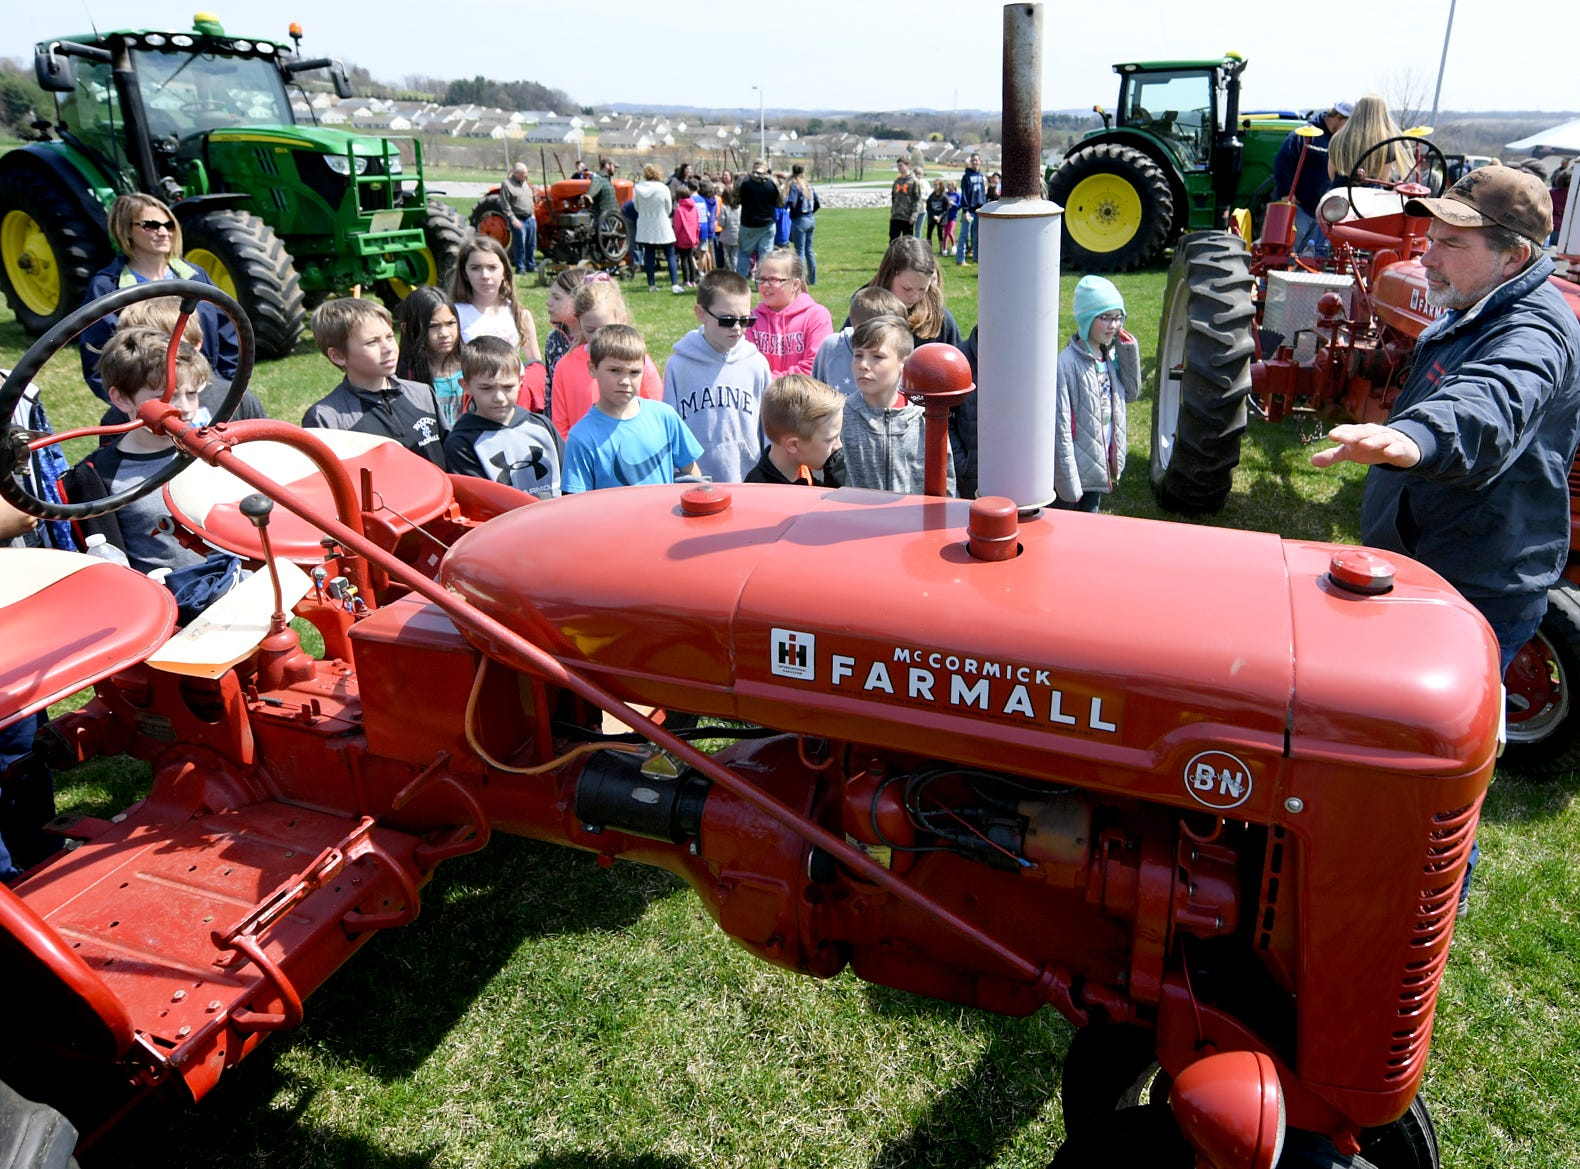 Carey Waugh of Shrewsbury Township talks to Spring Grove Elementary School fourth graders about the 1947 Farmall tractor he was showing during the district's 6th Annual Rollin' Tractor Show Thursday, April 11, 2019. The show is presented by the Future Farmers Club. Alumni and area residents brought farm equipment to display with the goal of acquainting students with the agriculture industry. The show, which included a parade of equipment, visited the intermediate and elementary schools. Bill Kalina photo